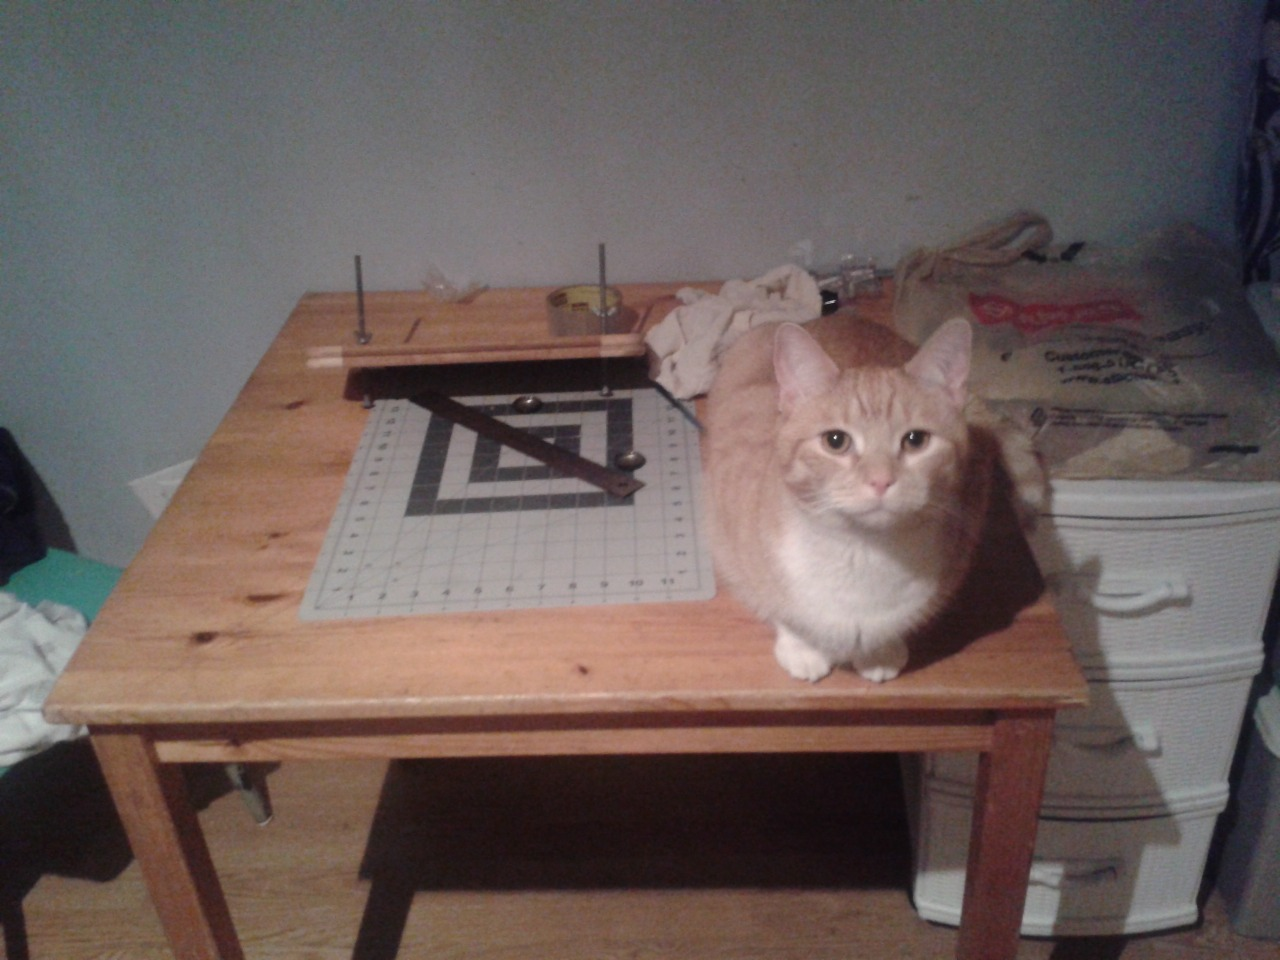 photo of a cat on a table with bookbinding supplies